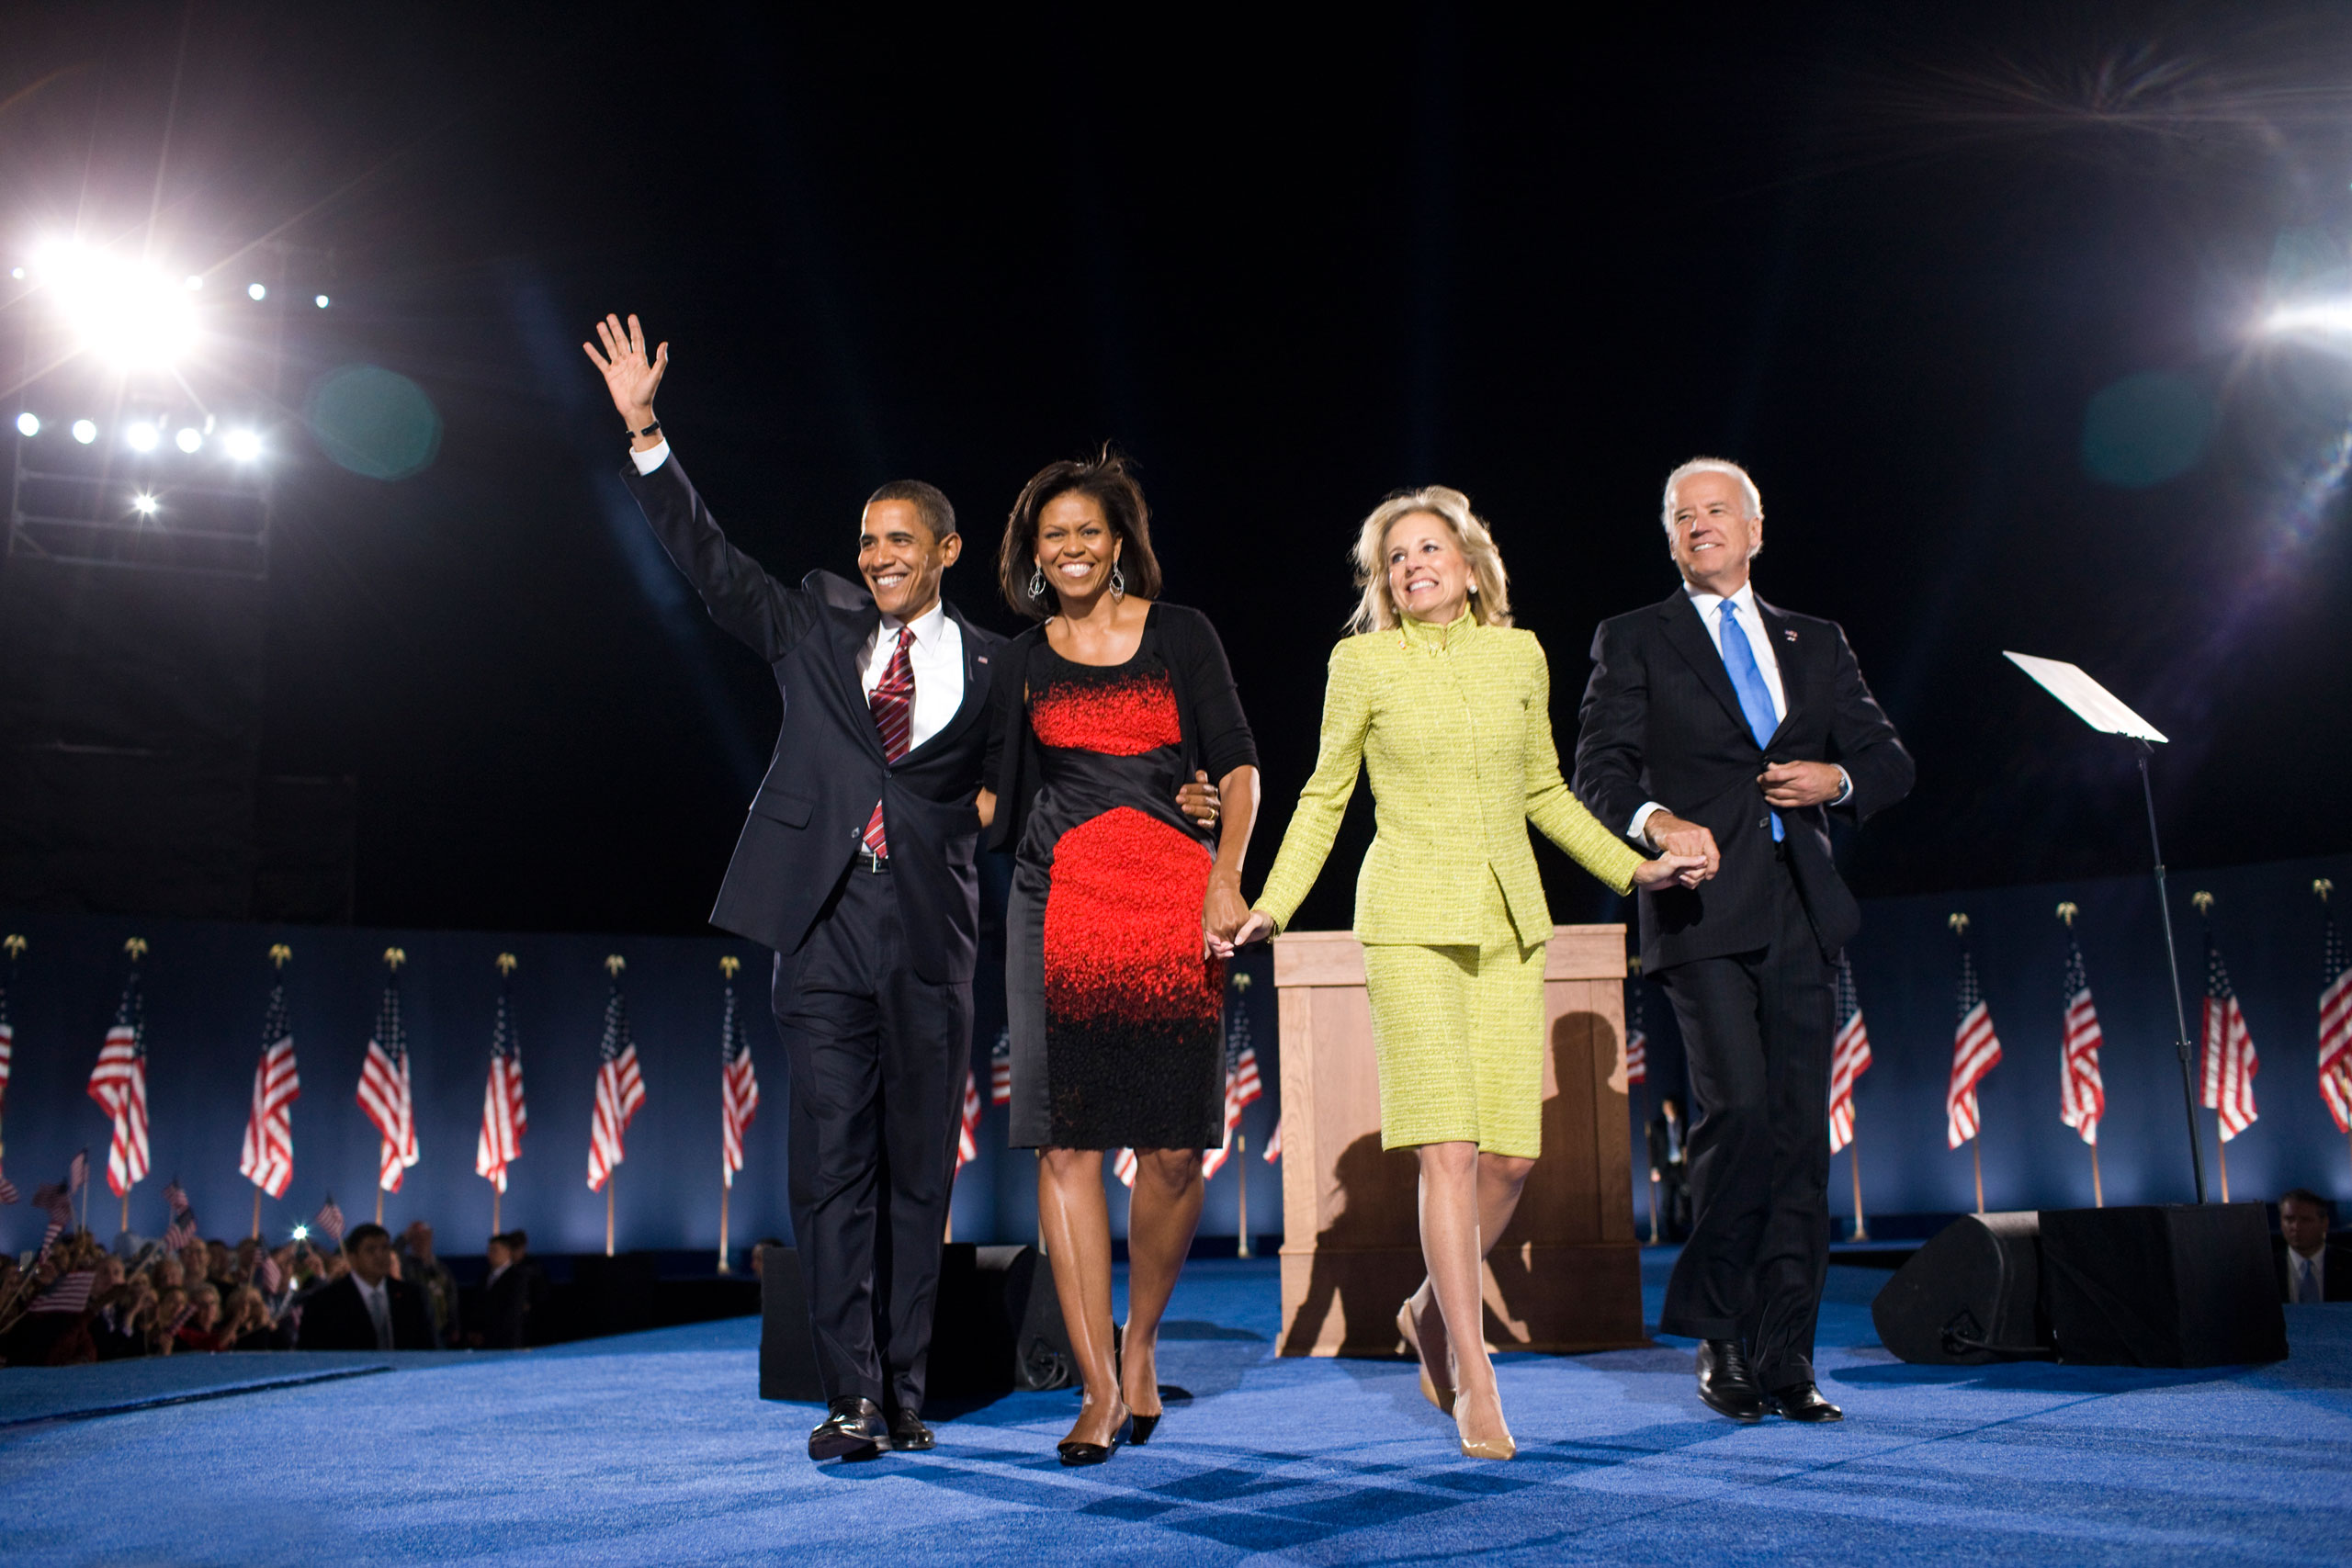 Barack Obama, Michelle Obama, Joe Biden and Jill Biden celebrate after Obama's victory speech at the election night rally in Chicago, on Nov. 04, 2008.